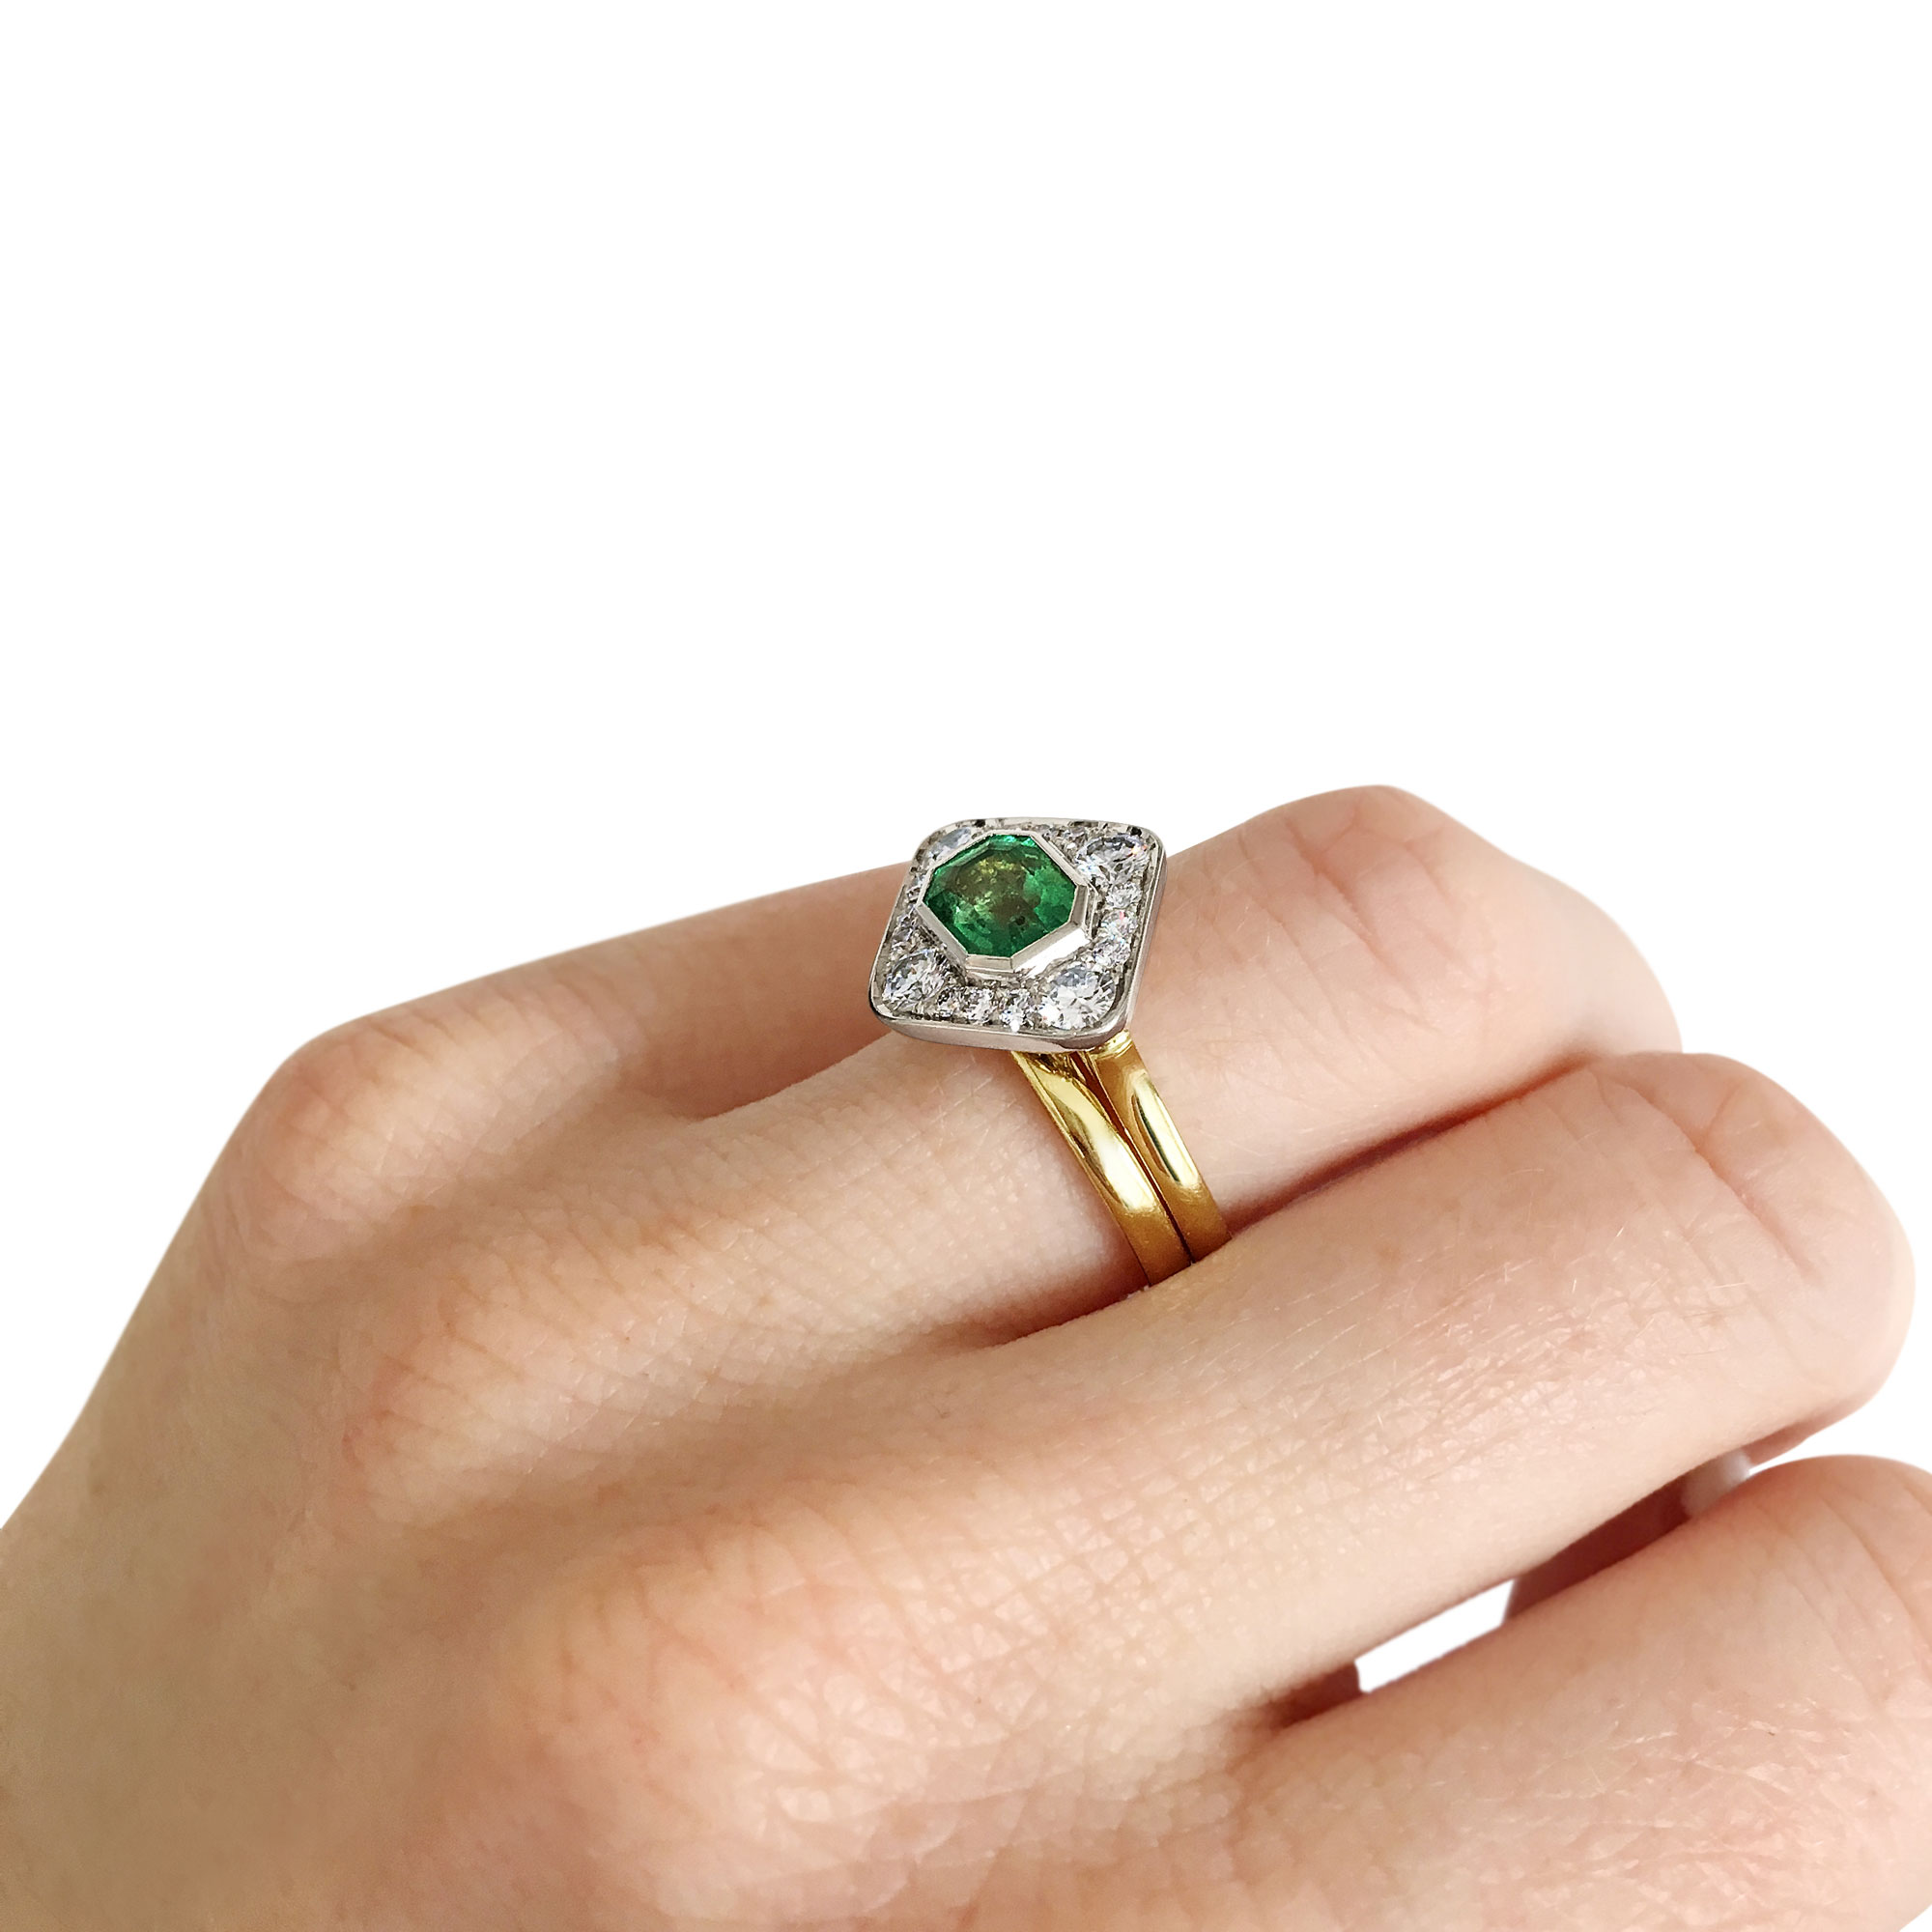 Emerald and diamond panel ring mounted in 18ct white and yellow gold on hand